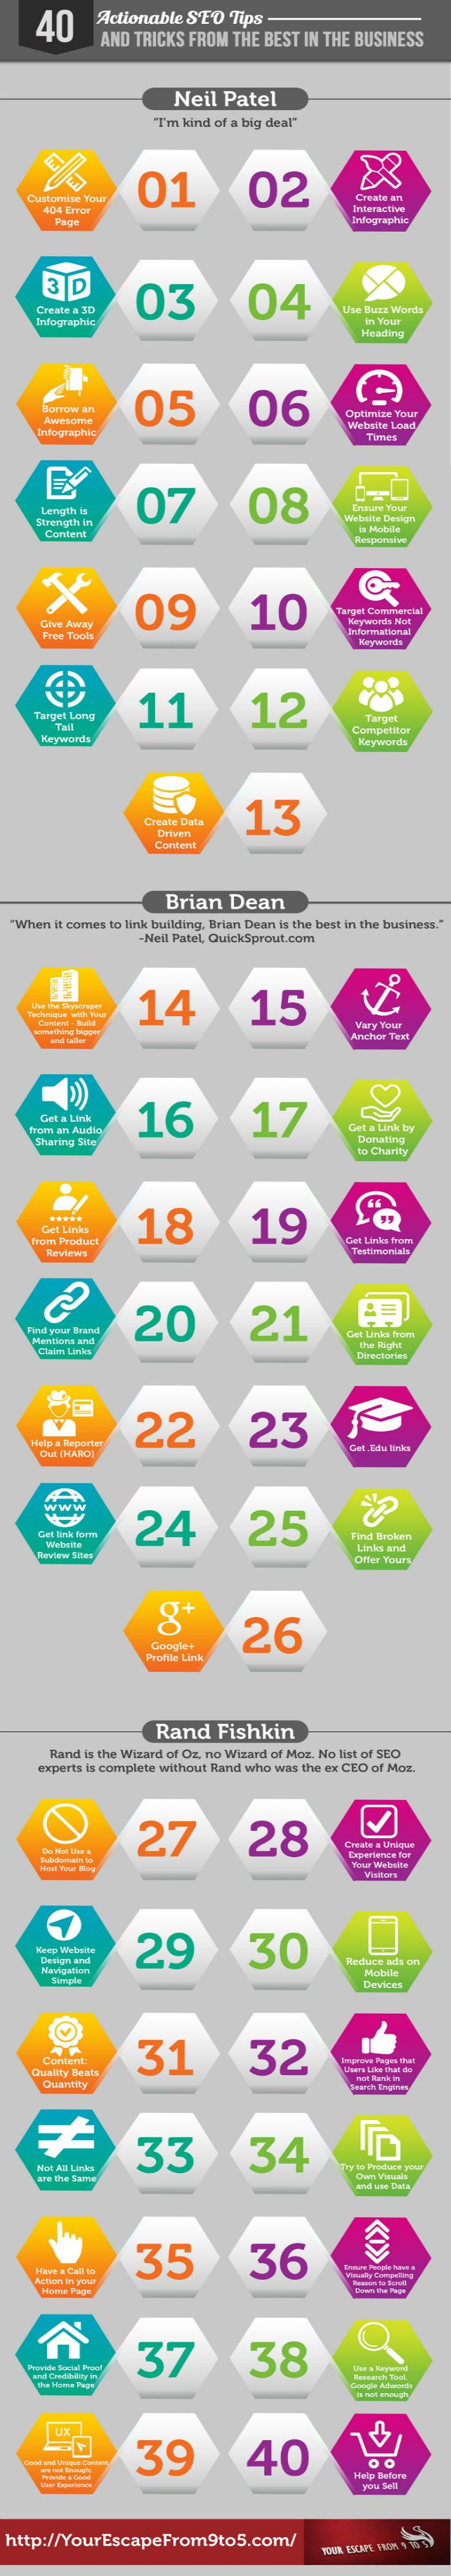 40 Actionable SEO Tips and Tricks from the Best in the Business Infographic